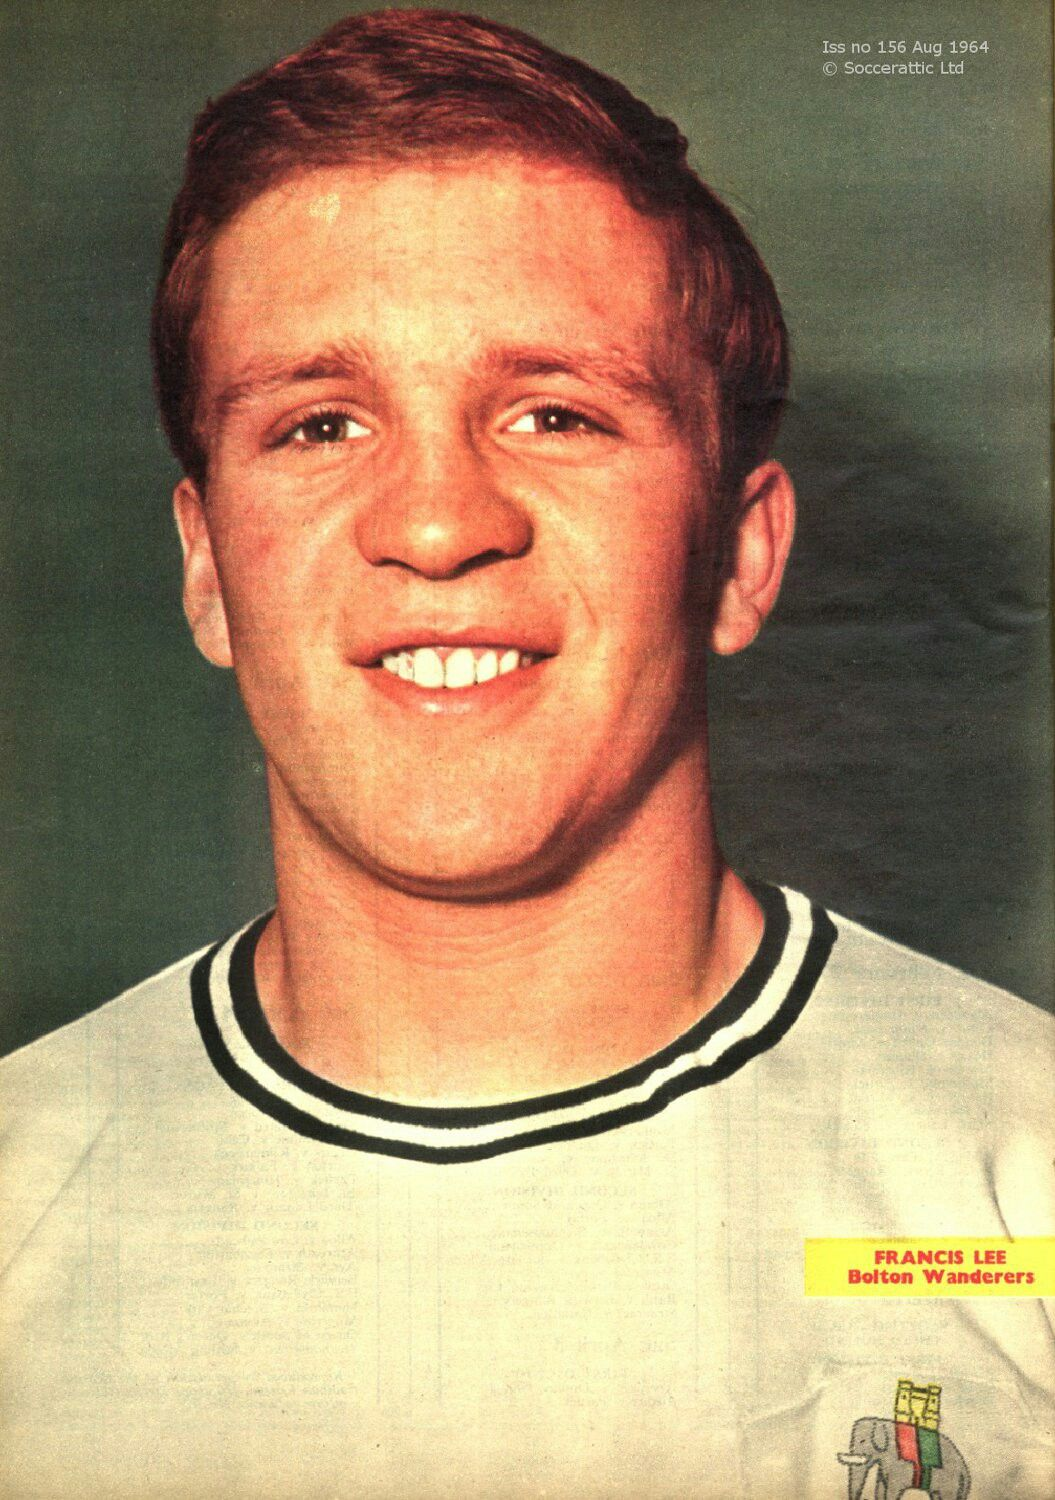 Francis Lee of Bolton Wanderers in 1967